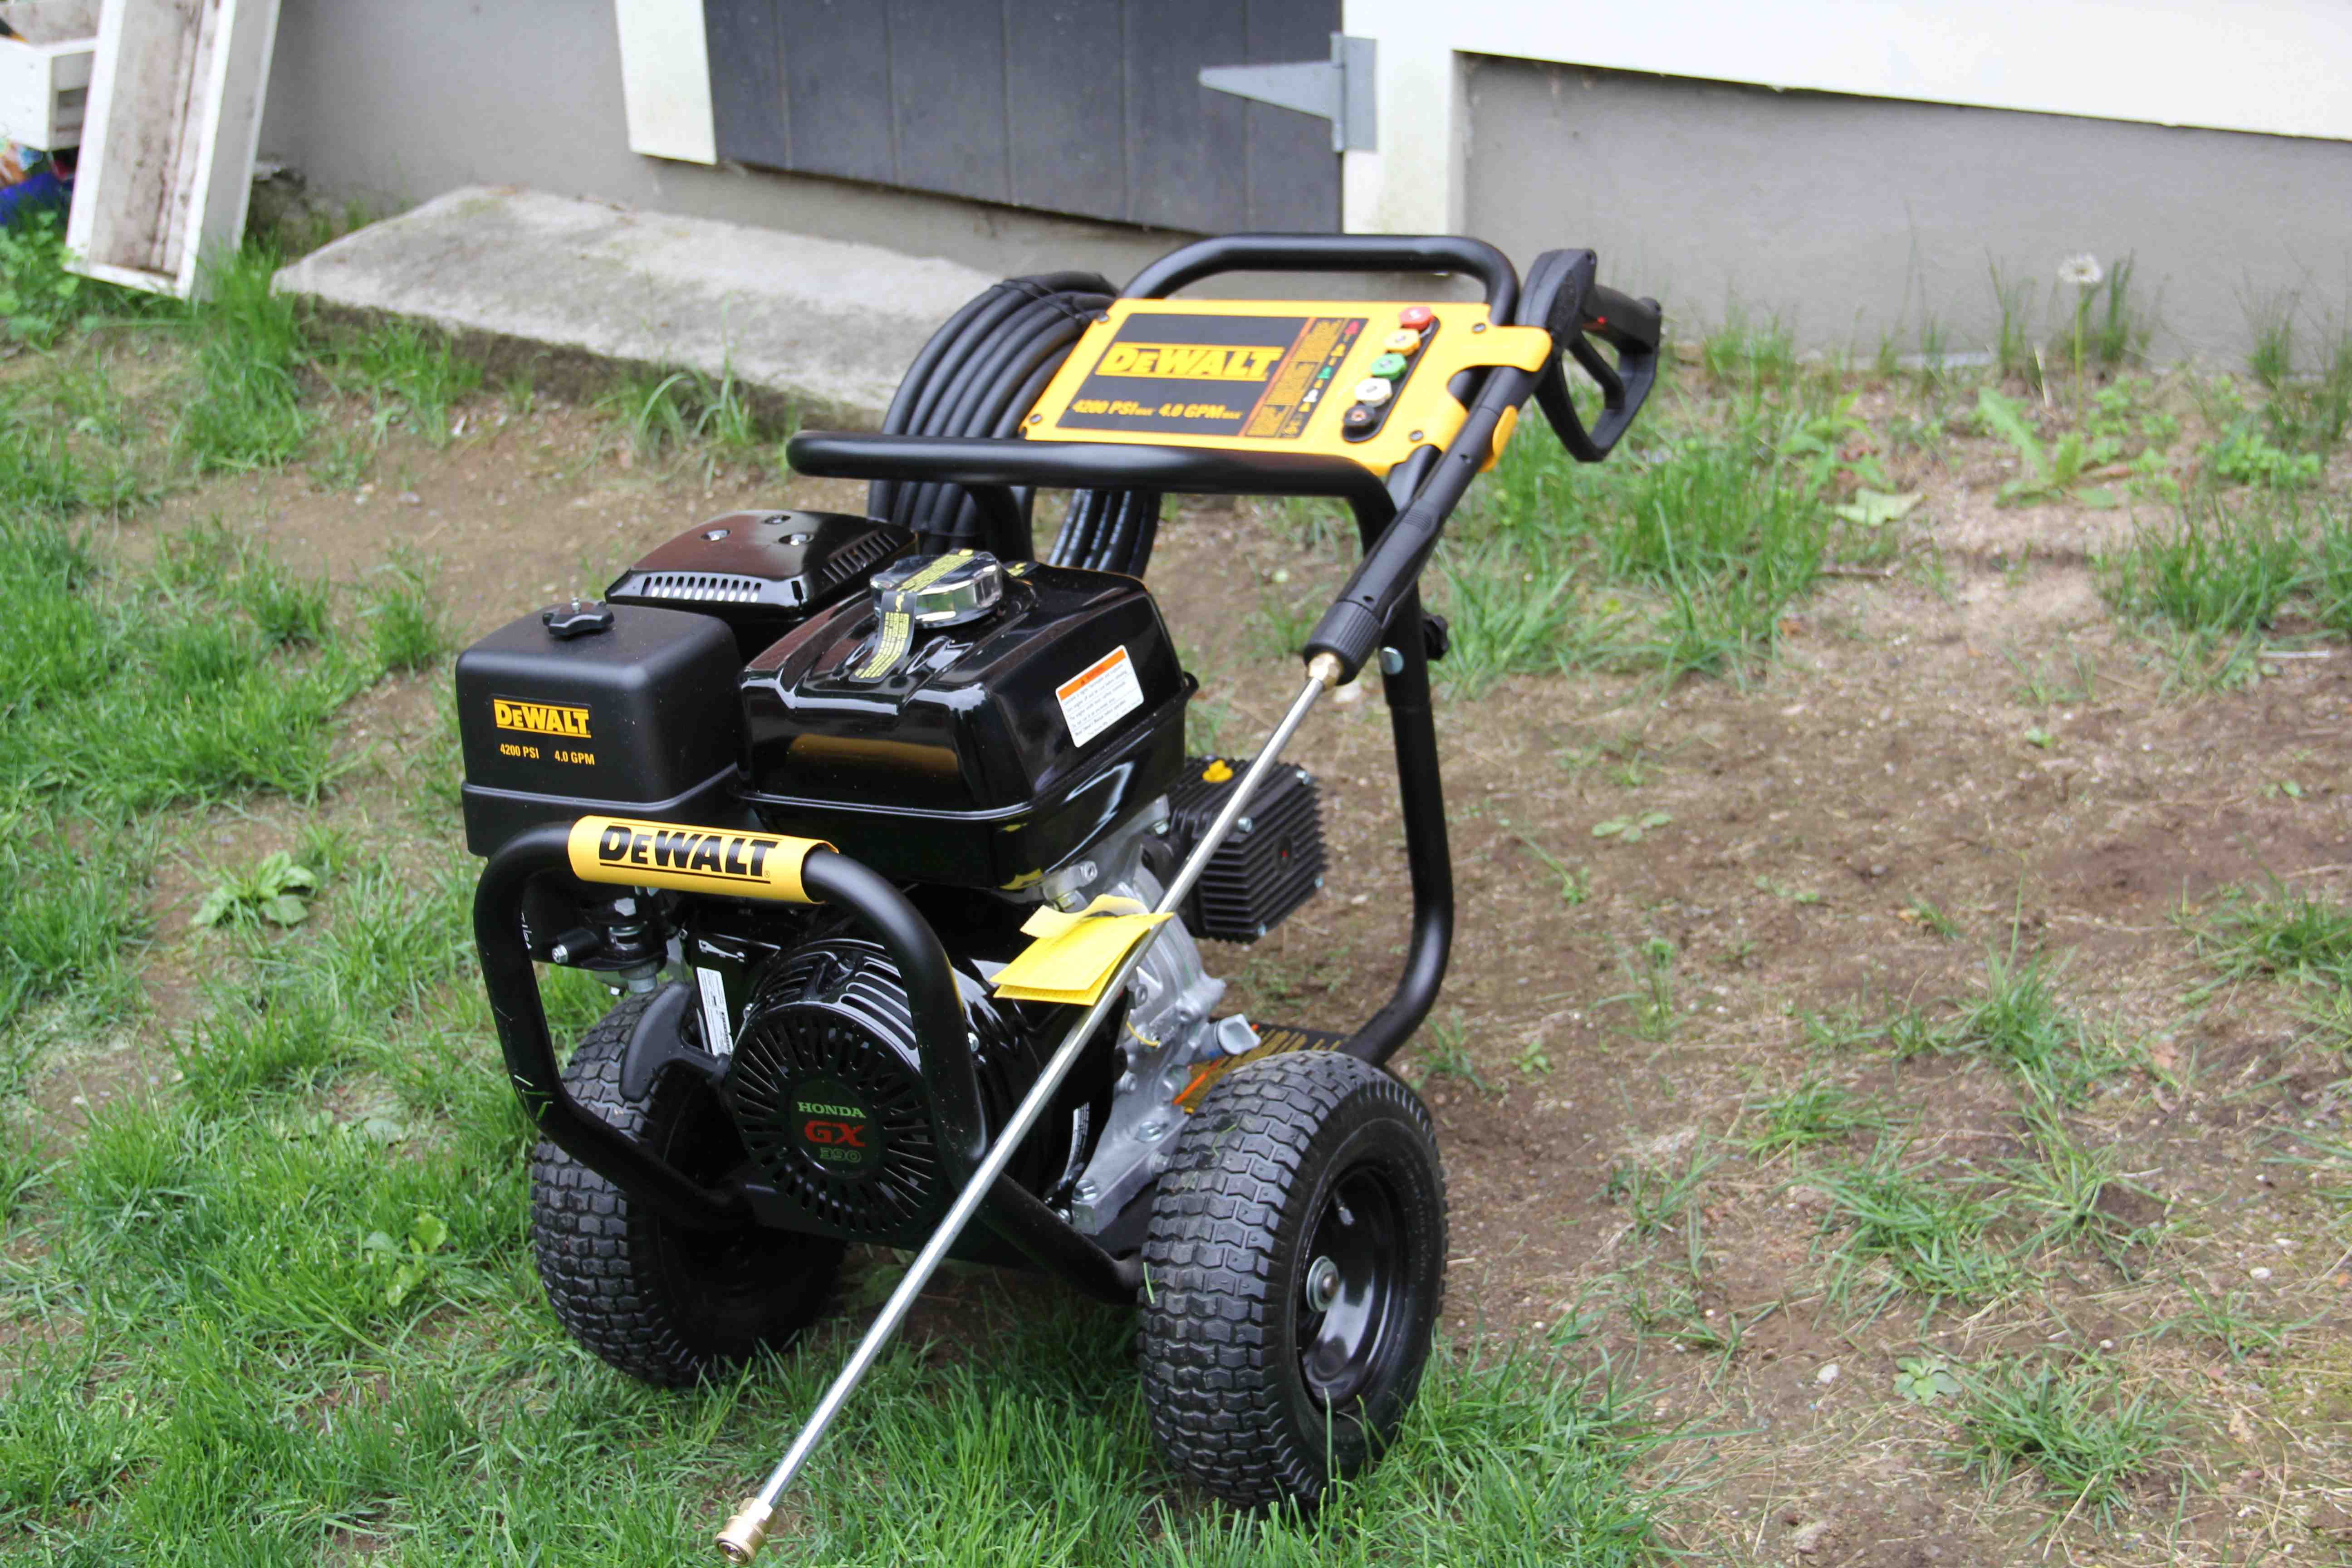 Dewalt Dxpw4240 Pressure Washer Review A Concord Carpenter